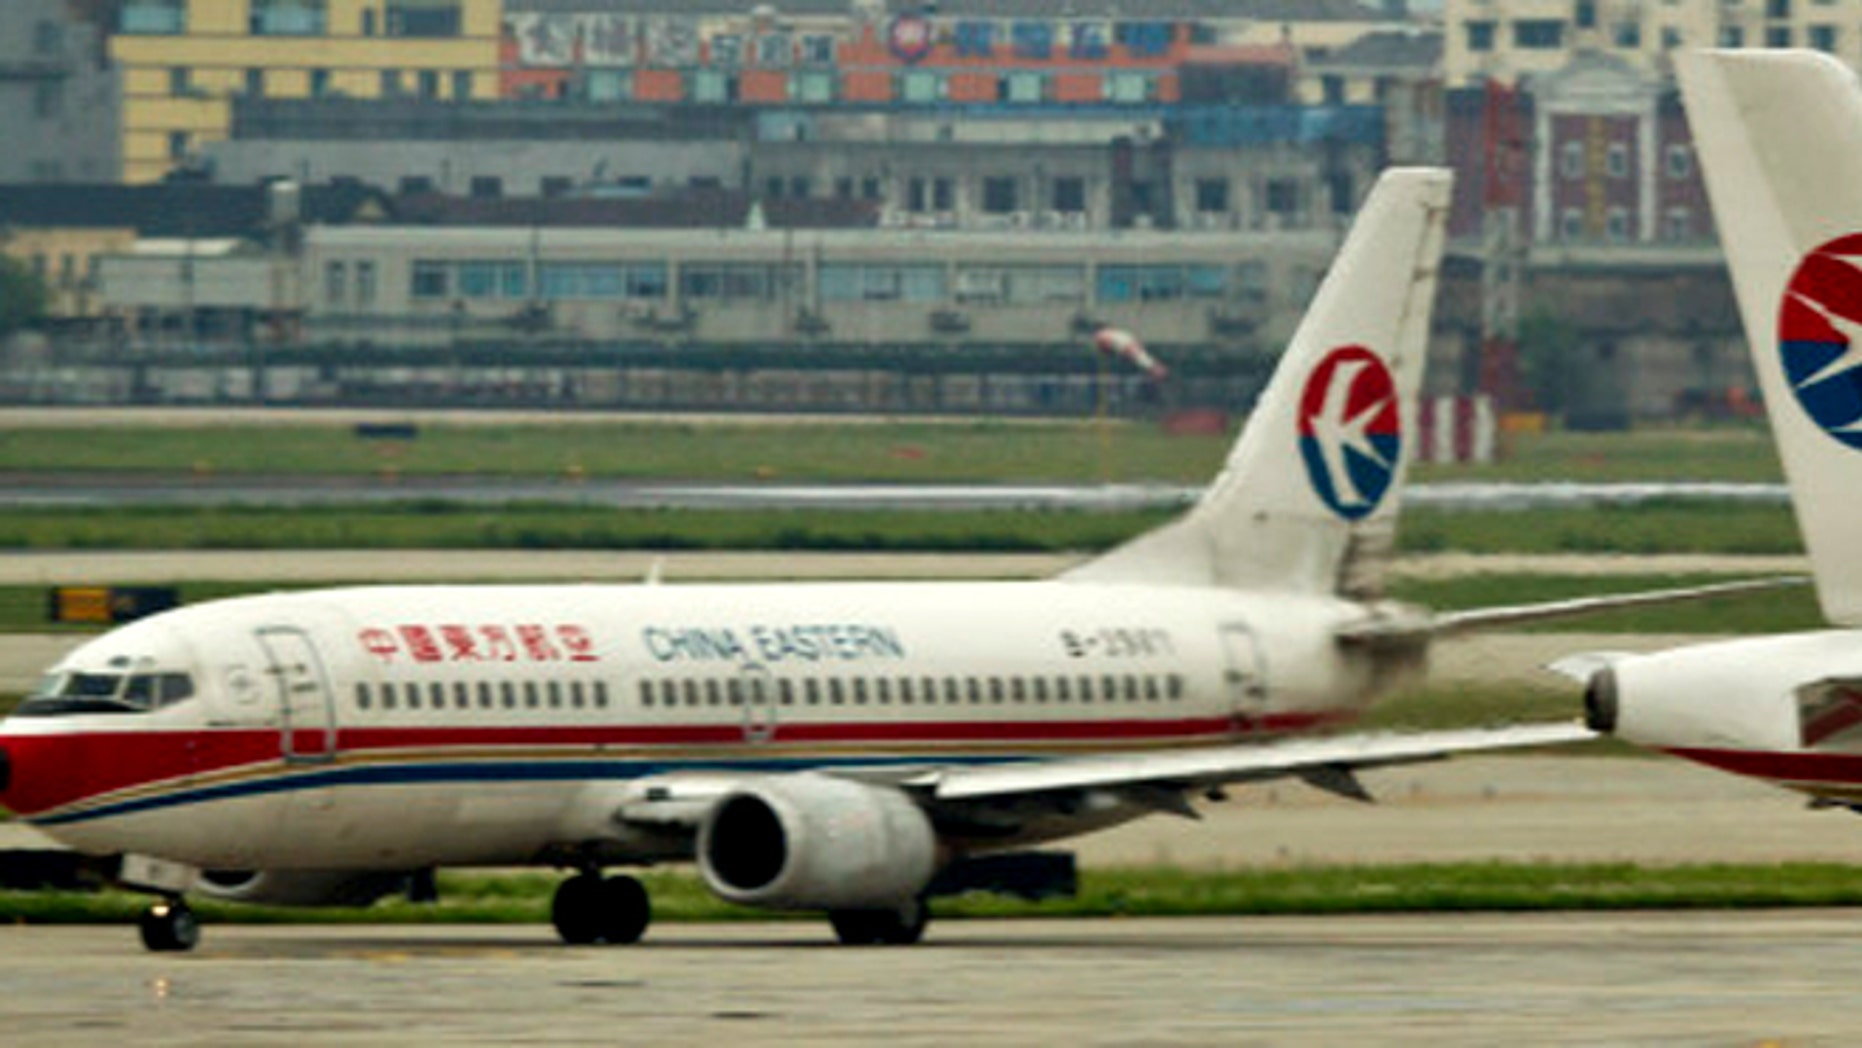 A man in China used one first class ticket and scammed free meals at a Eastern China Airline airport lounge for nearly a year.